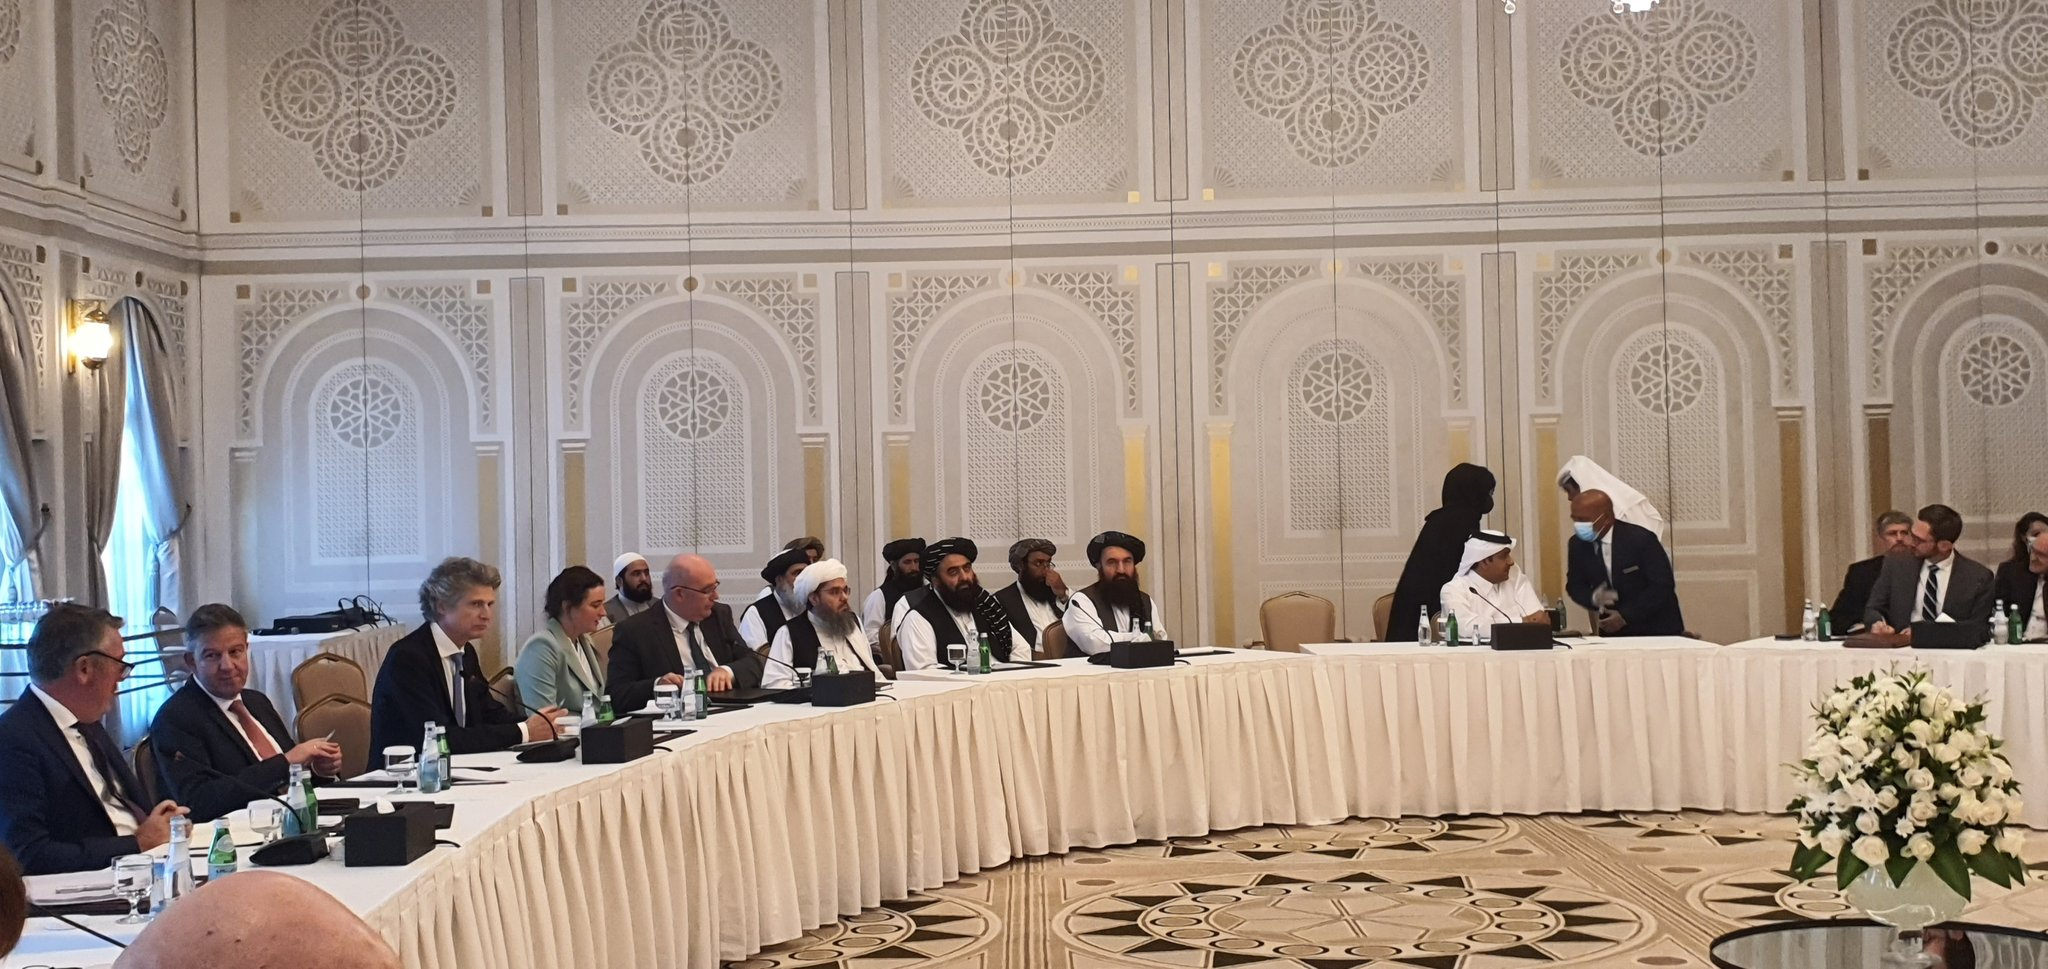 Taliban urge world to remove sanctions, formally recognize IEA government